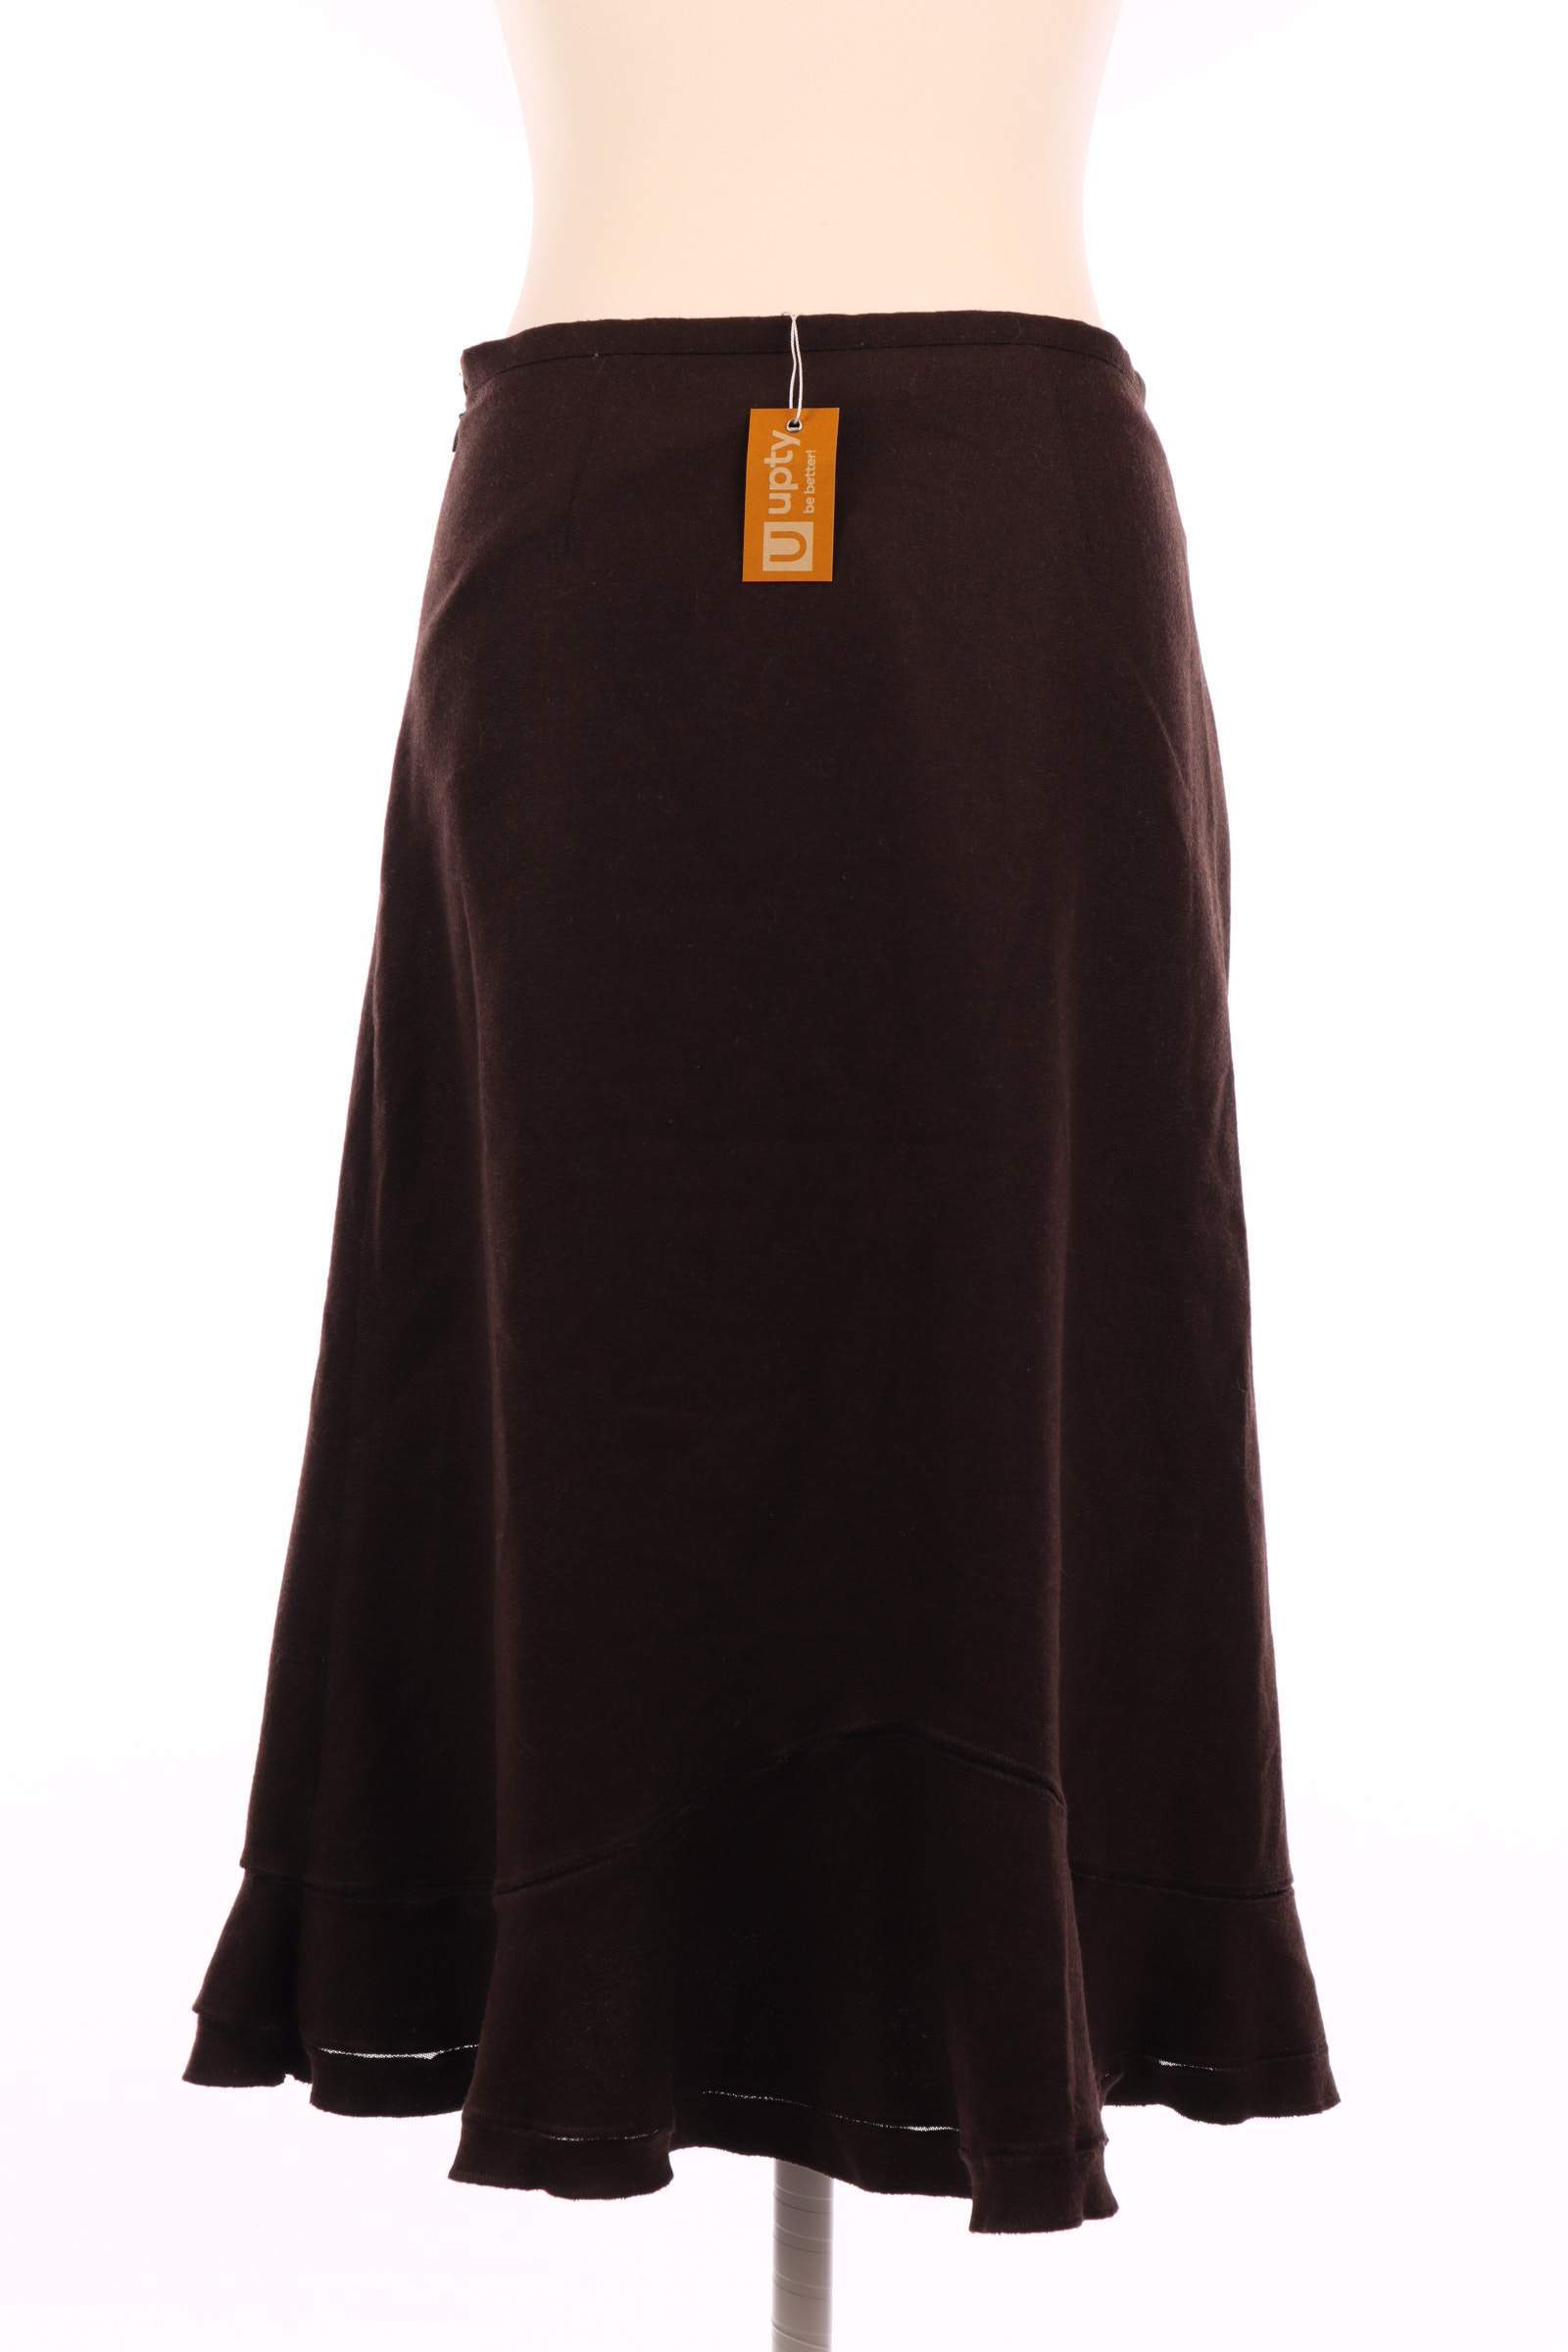 Marks&Spencer Brown Skirt - upty.store